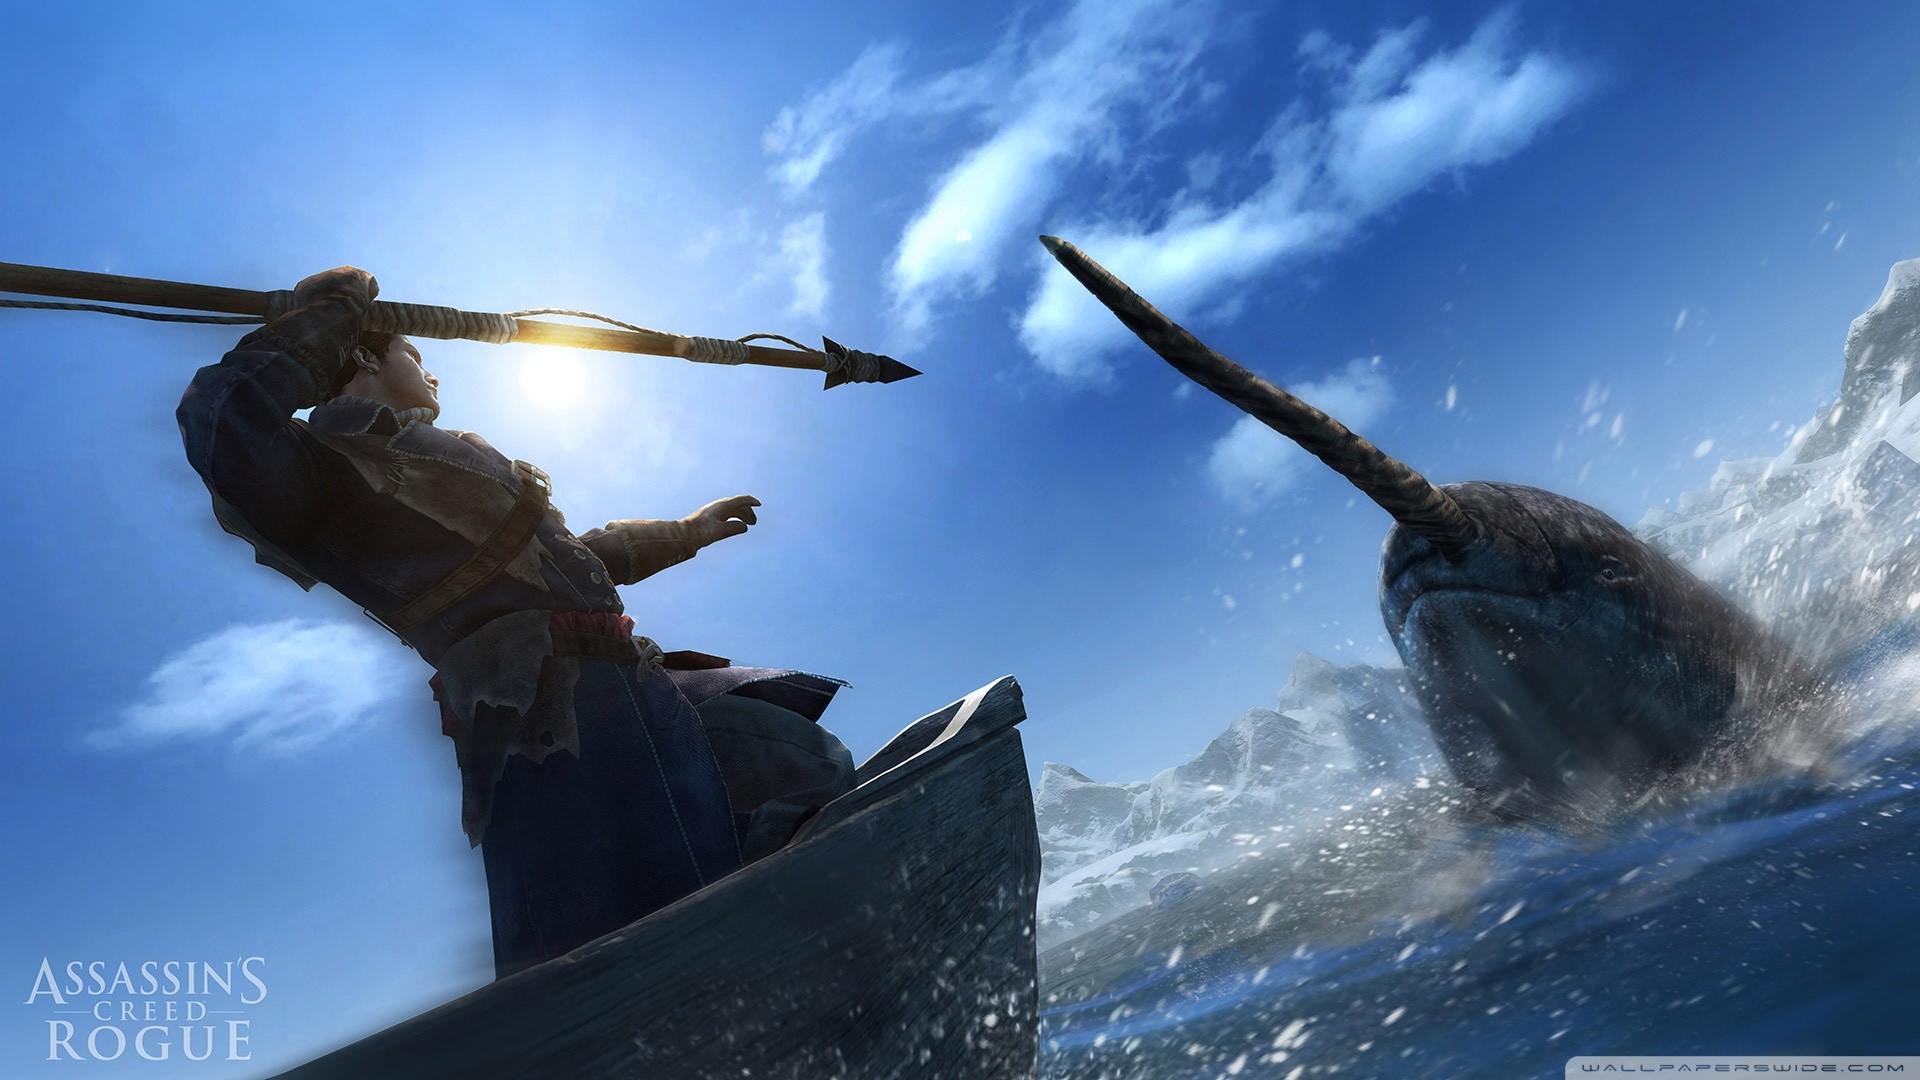 Assassins Creed Rogue Hunting Narwhal HD Wide Wallpaper for Widescreen